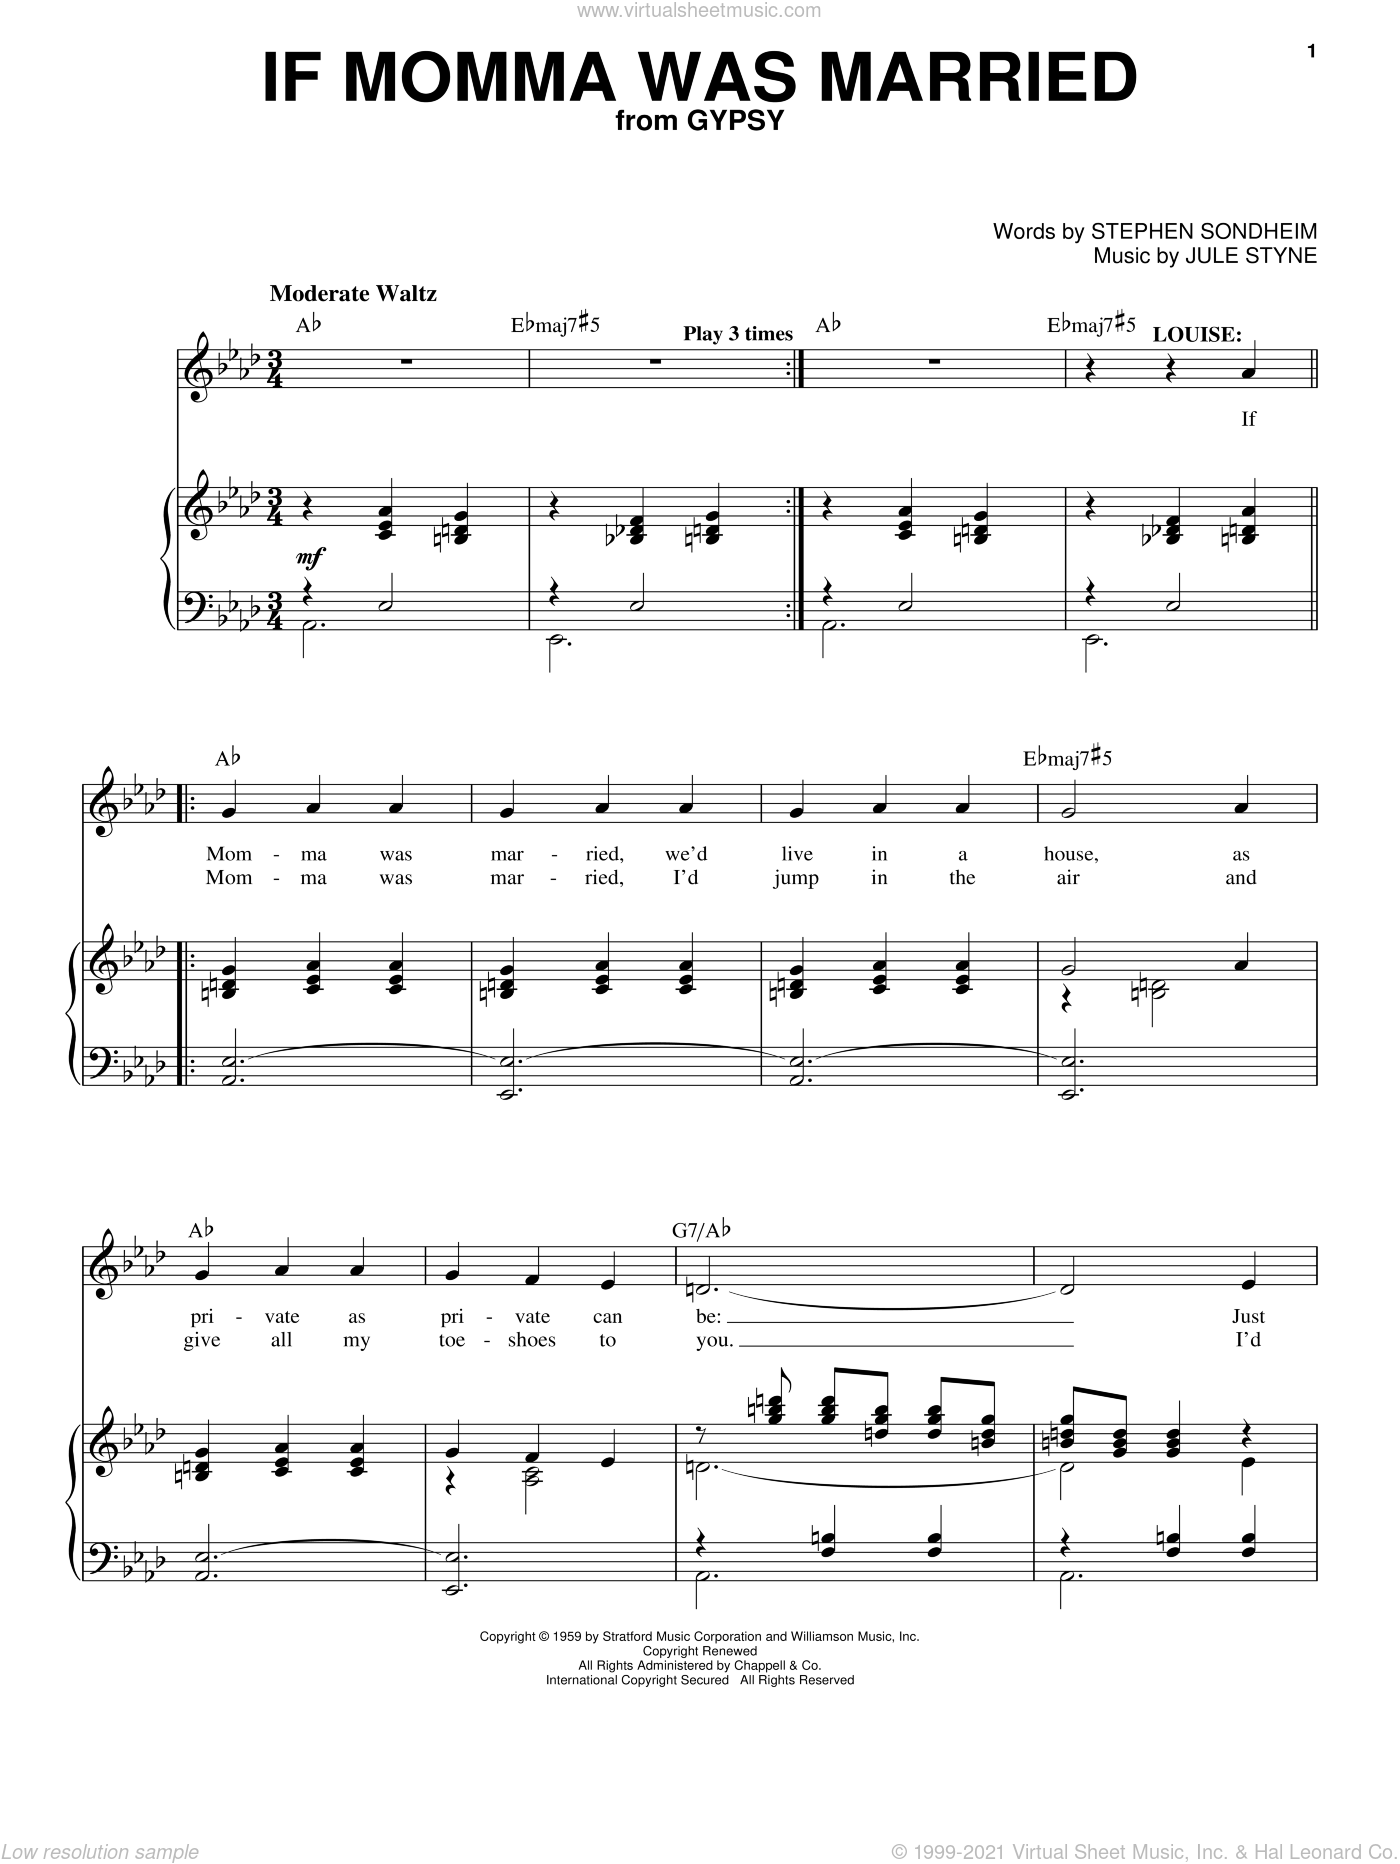 If Momma Was Married sheet music for voice and piano by Stephen Sondheim, Gypsy (Musical) and Jule Styne, intermediate skill level